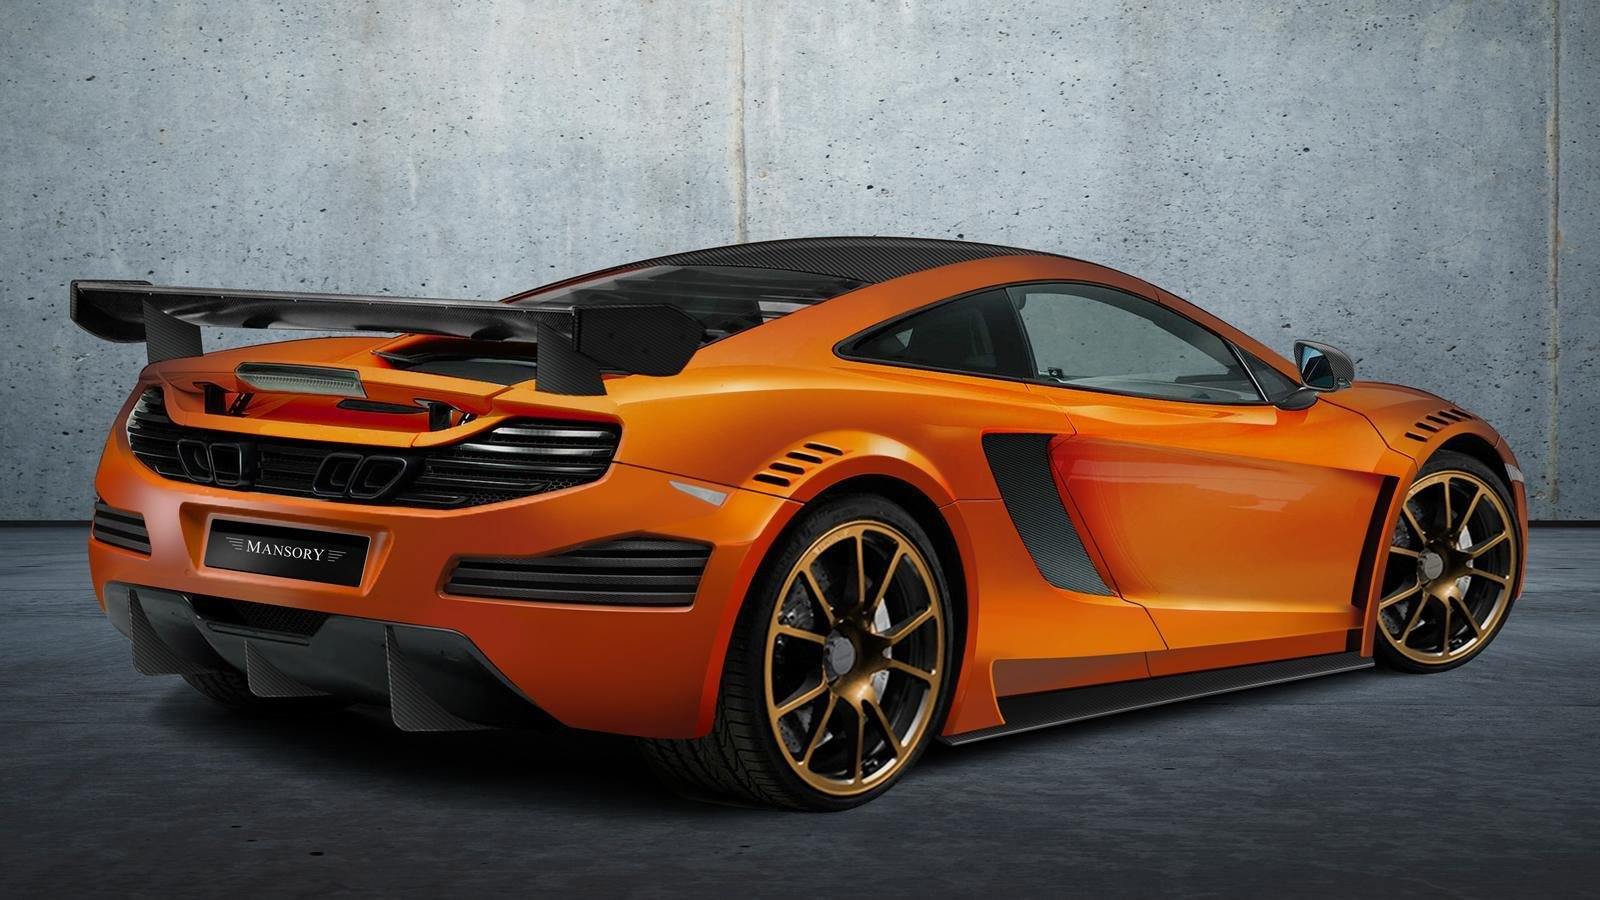 New Mansory Mclaren Mp4 12C Car Tuning On This Month